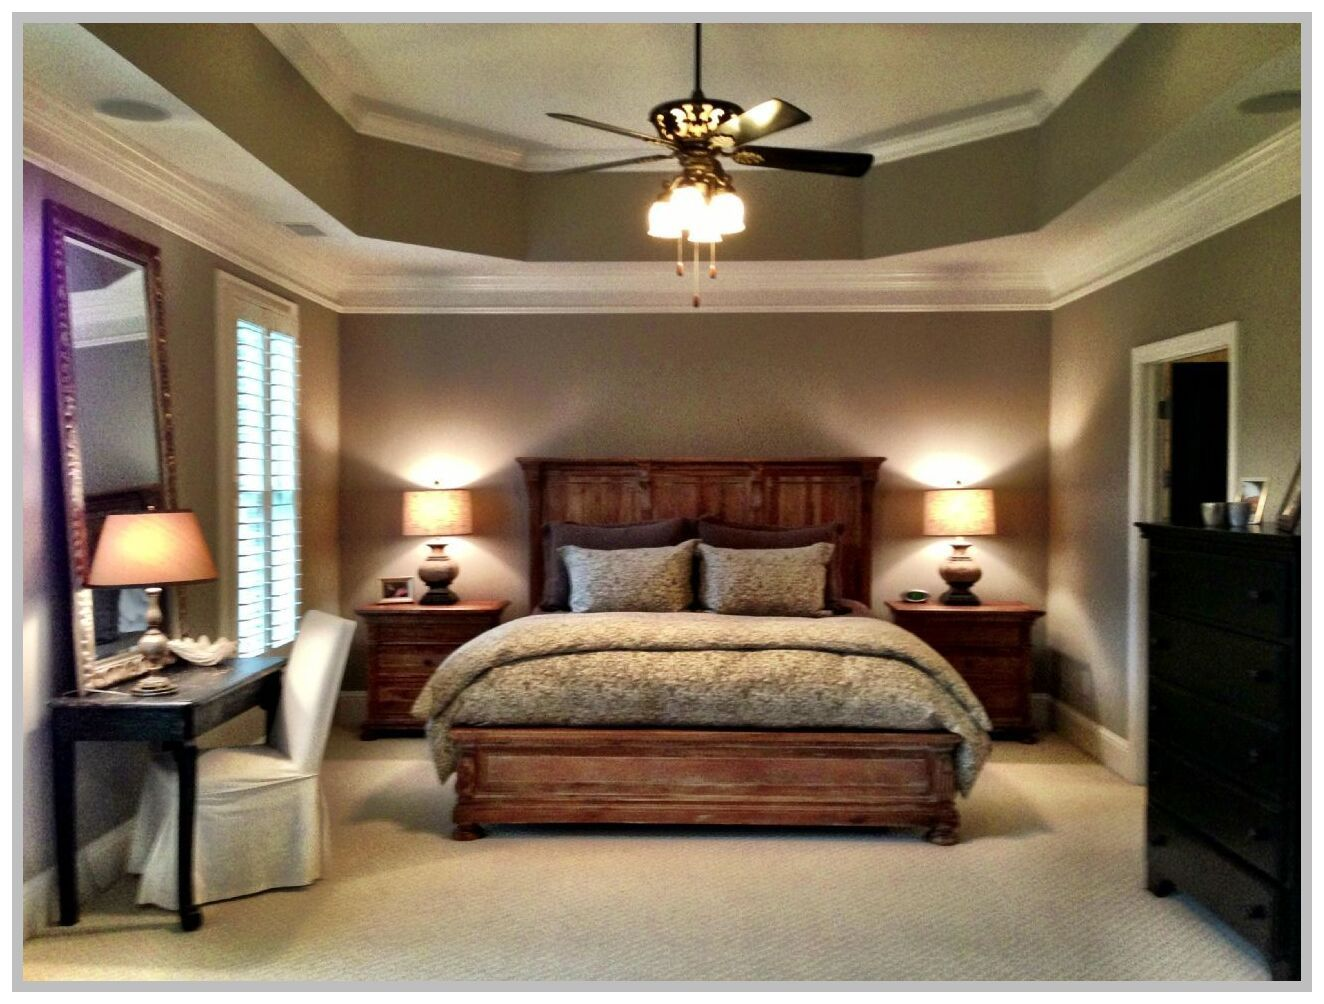 89 Reference Of Master Bedroom Tray Ceiling Ideas In 2020 Tray